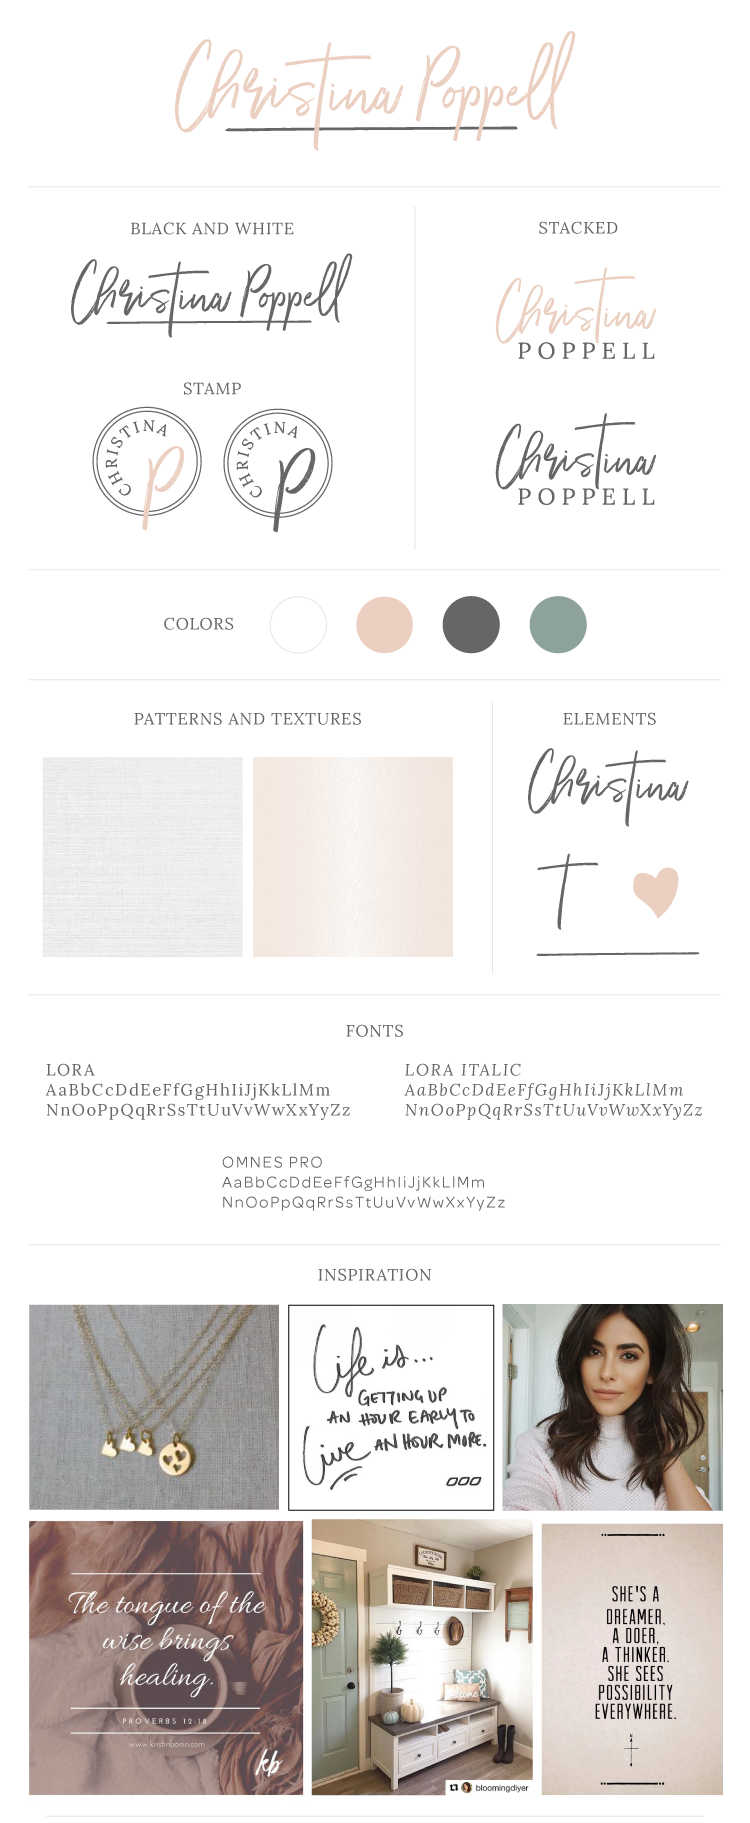 ChristinaPoppell_StyleGuide.png